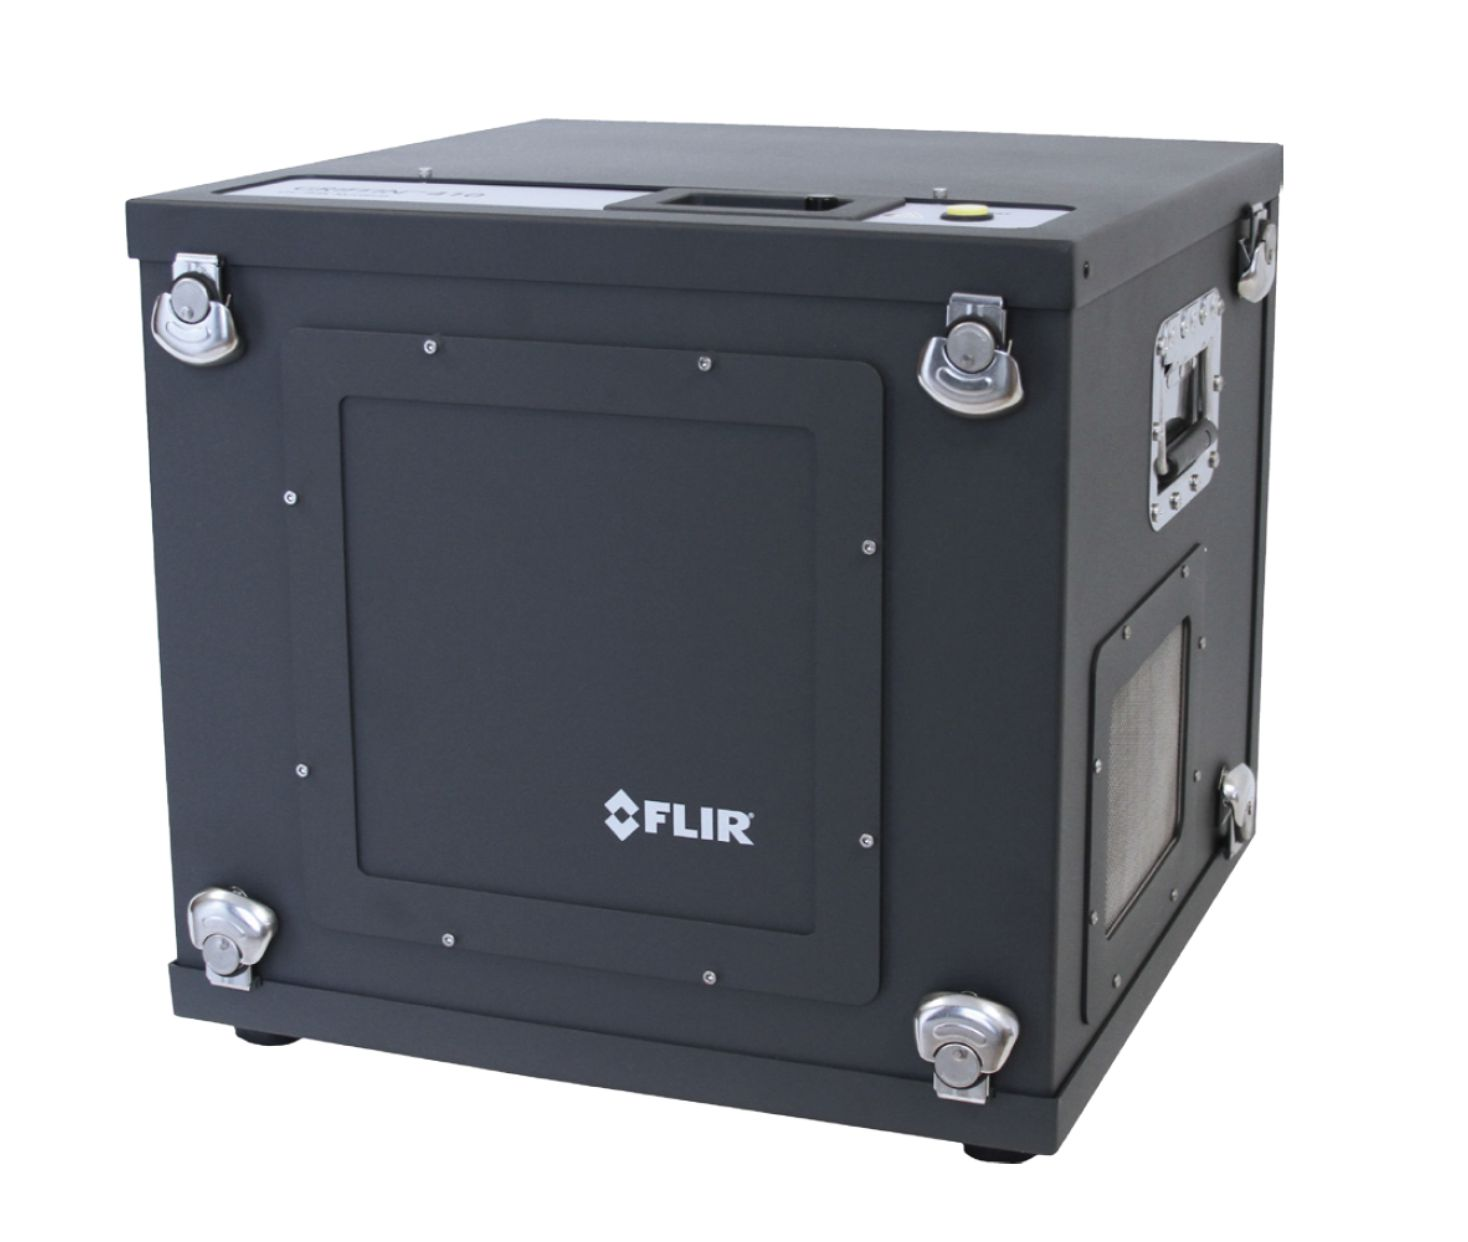 GRIFFIN400 SERIES Lab Quality, Mobile GC/MS That Anyone Can Use